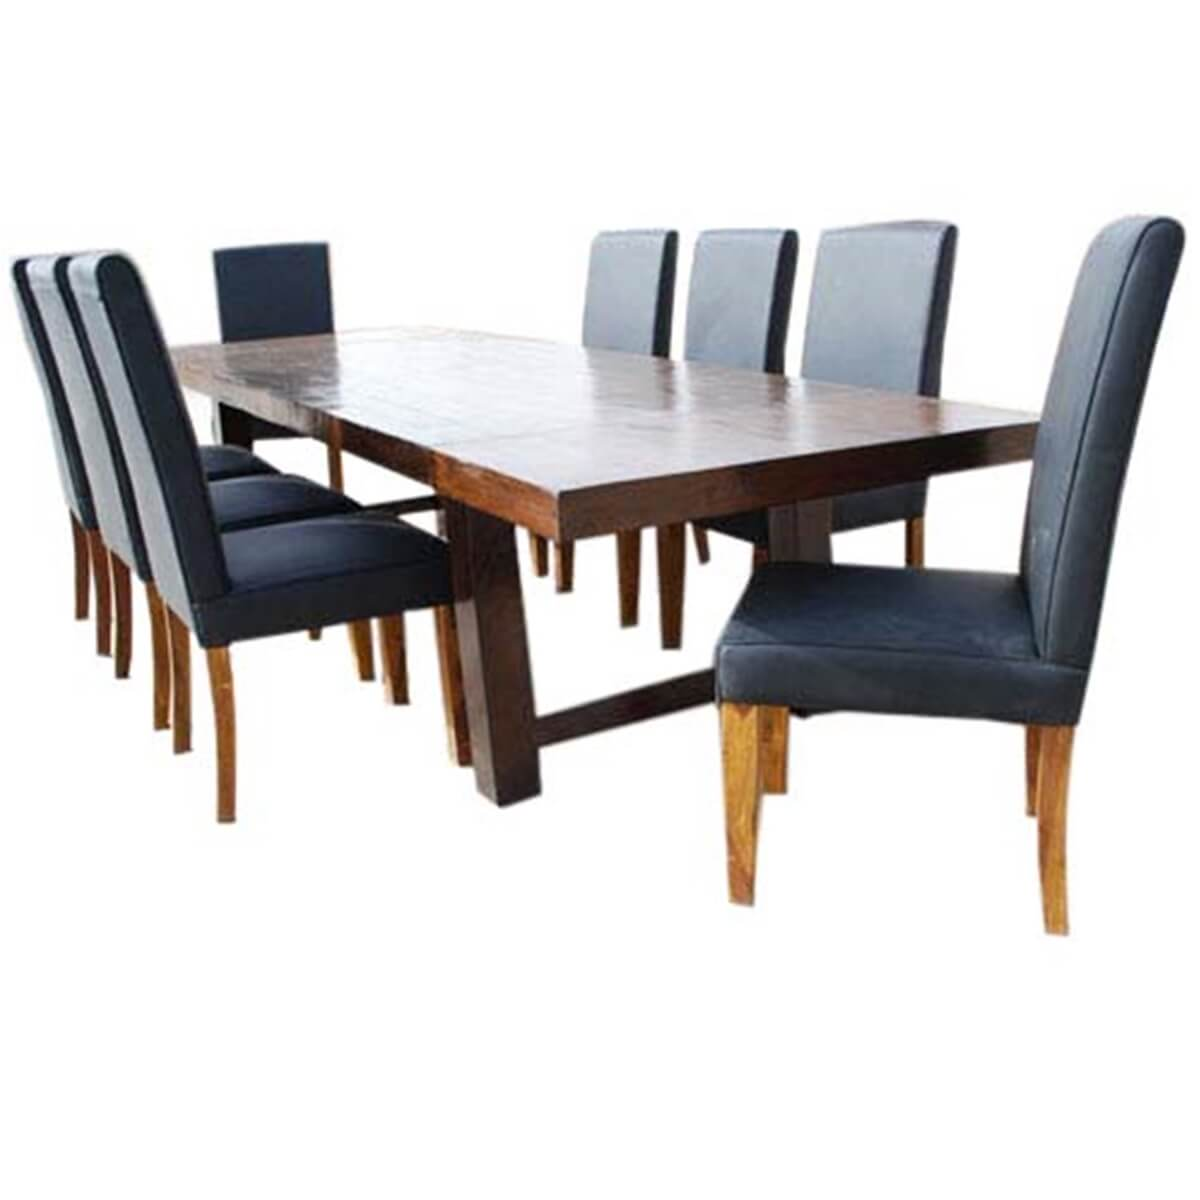 Matterhorn 13 pc transitional dining table and chair set for 12 person dinning table